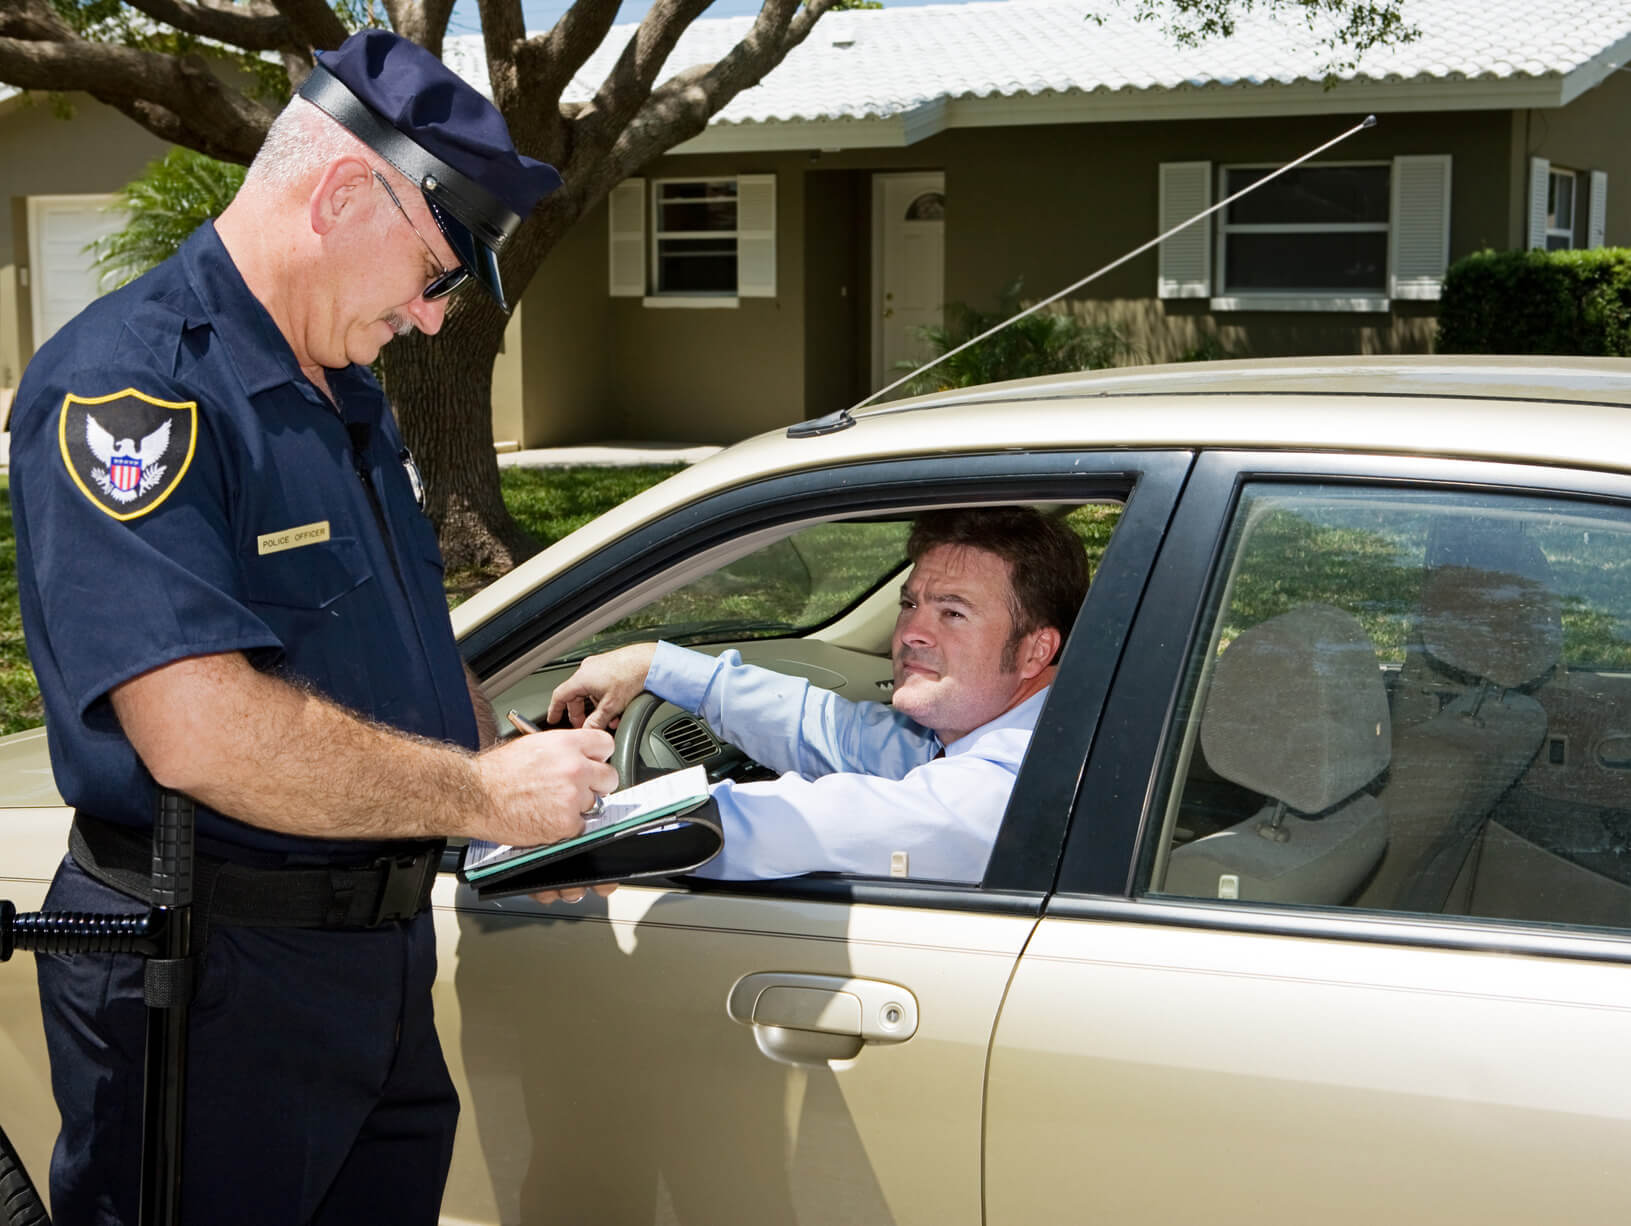 Speeding Ticket Lawyer >> Police - Writing Ticket - Atlanta Traffic Ticket Lawyer